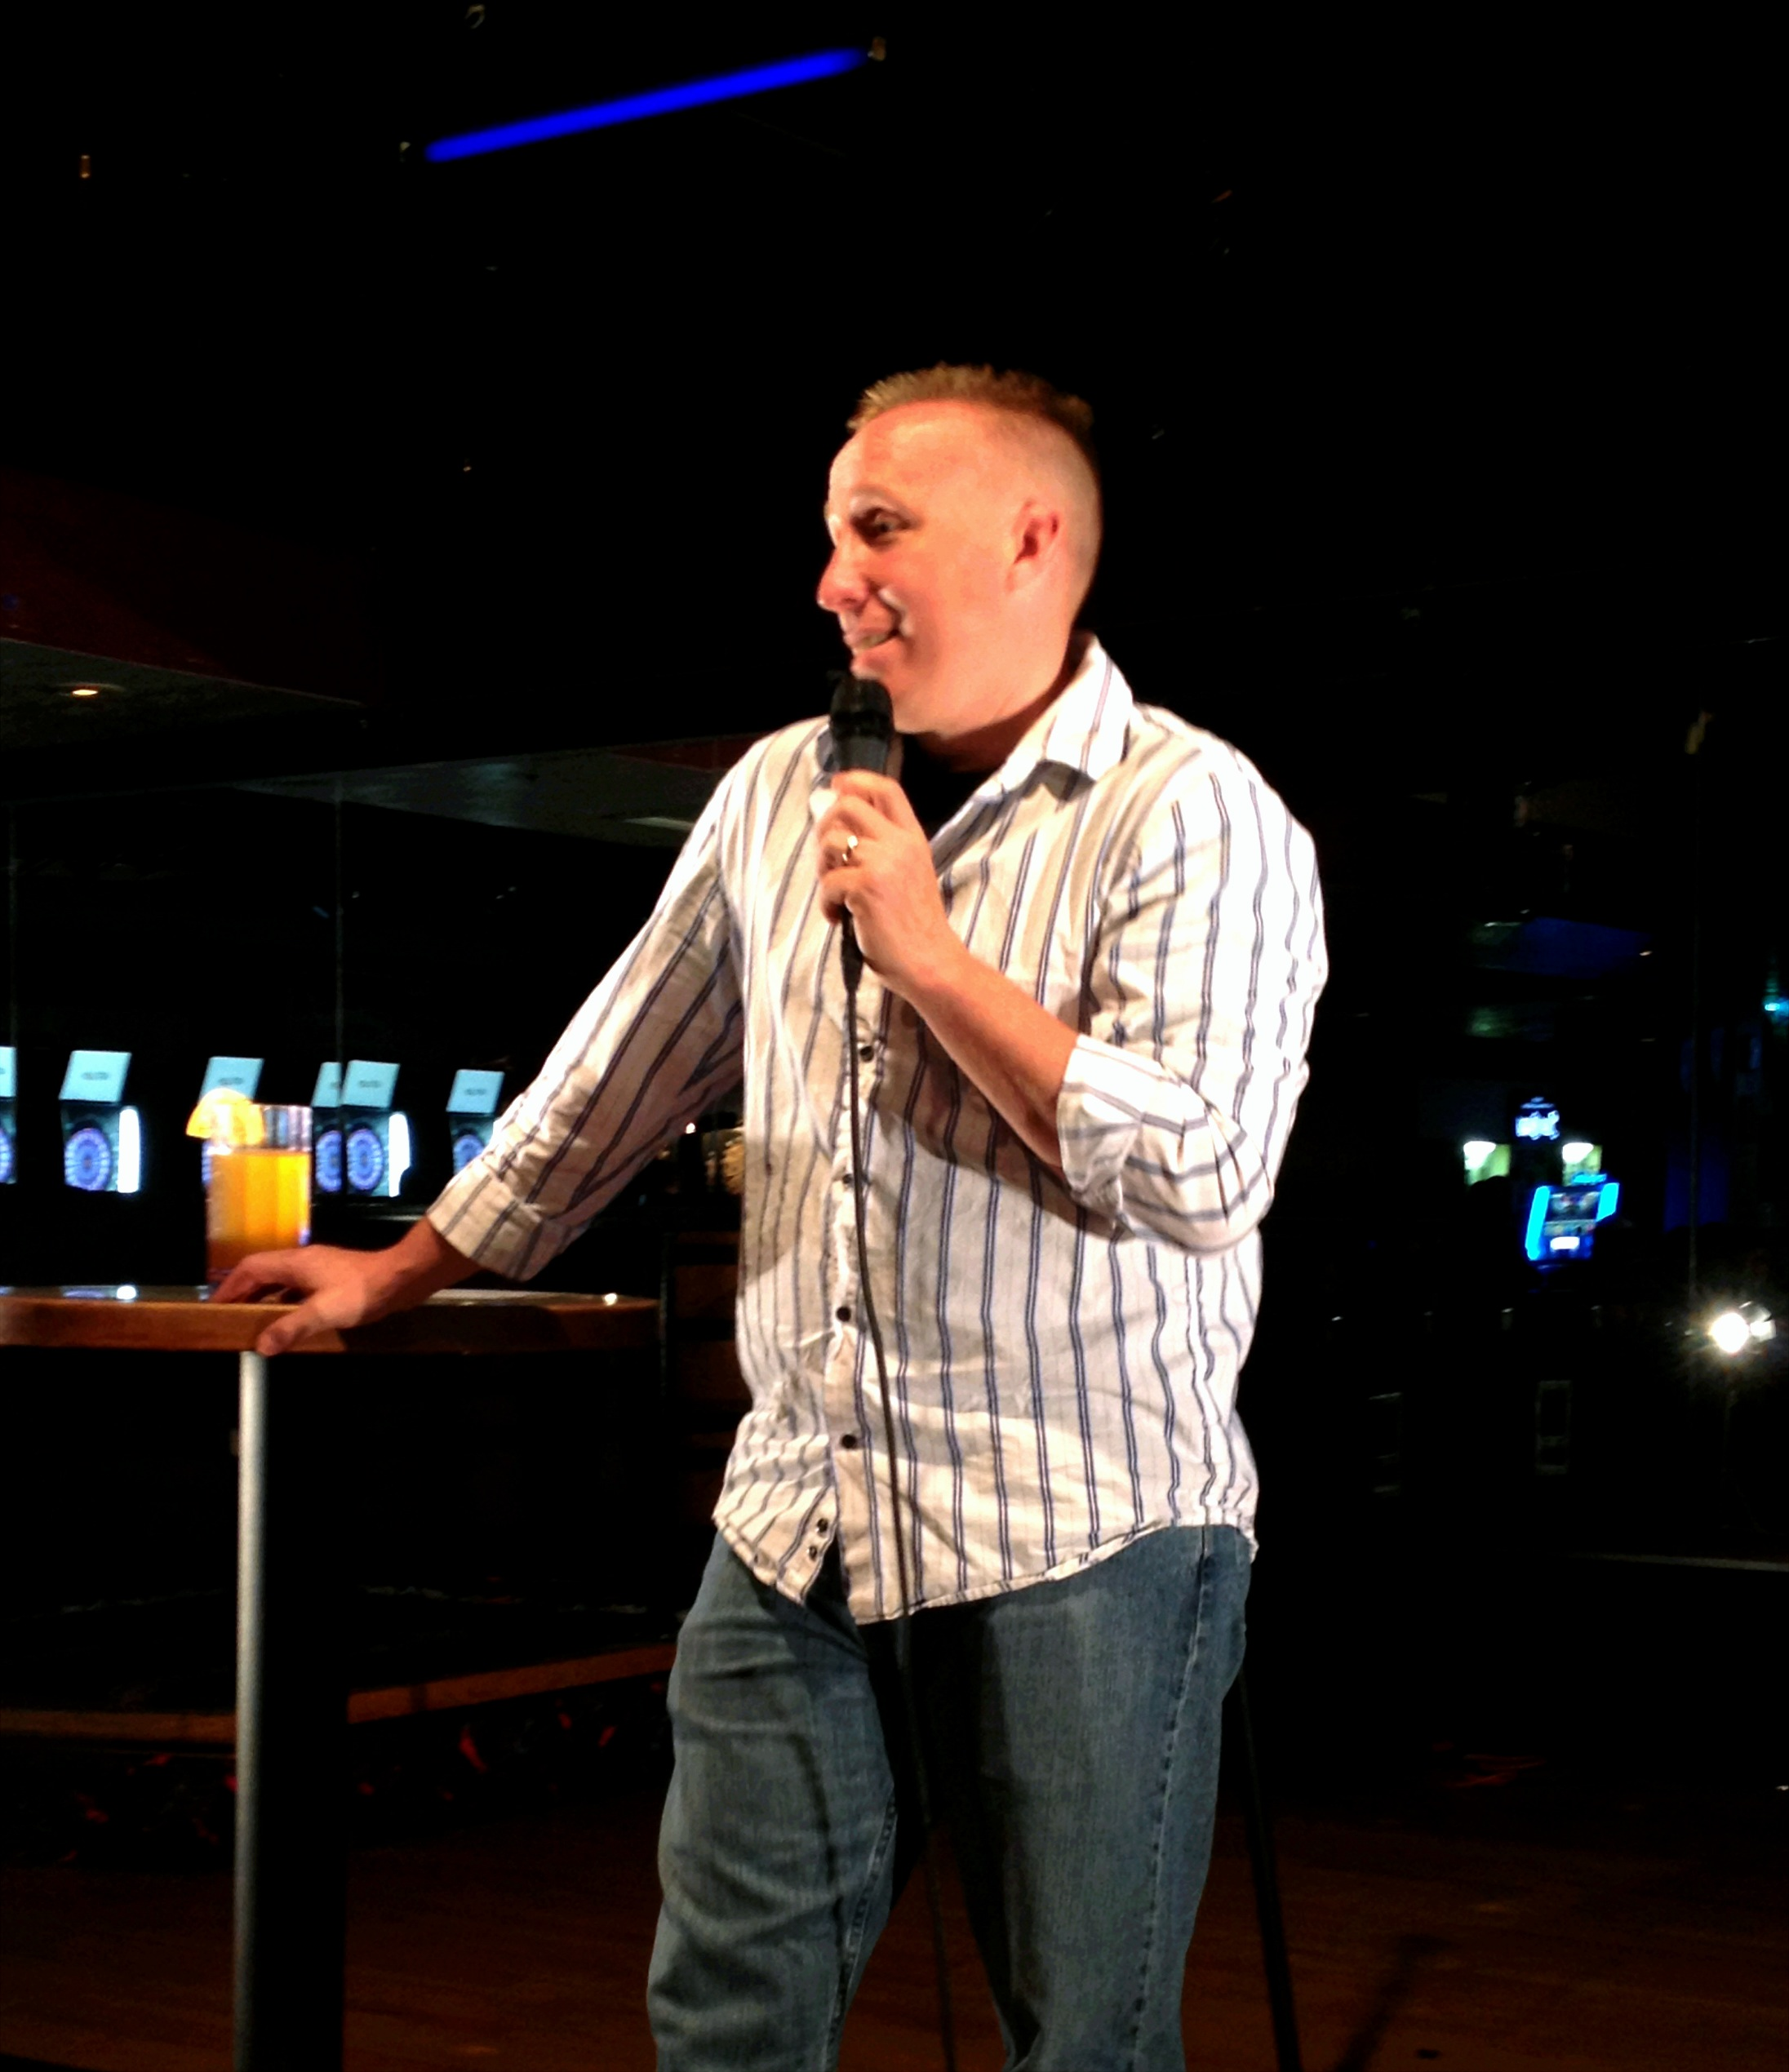 Always Funny: K-Town Komedy's – The Farewell Roast of Steve McInelly